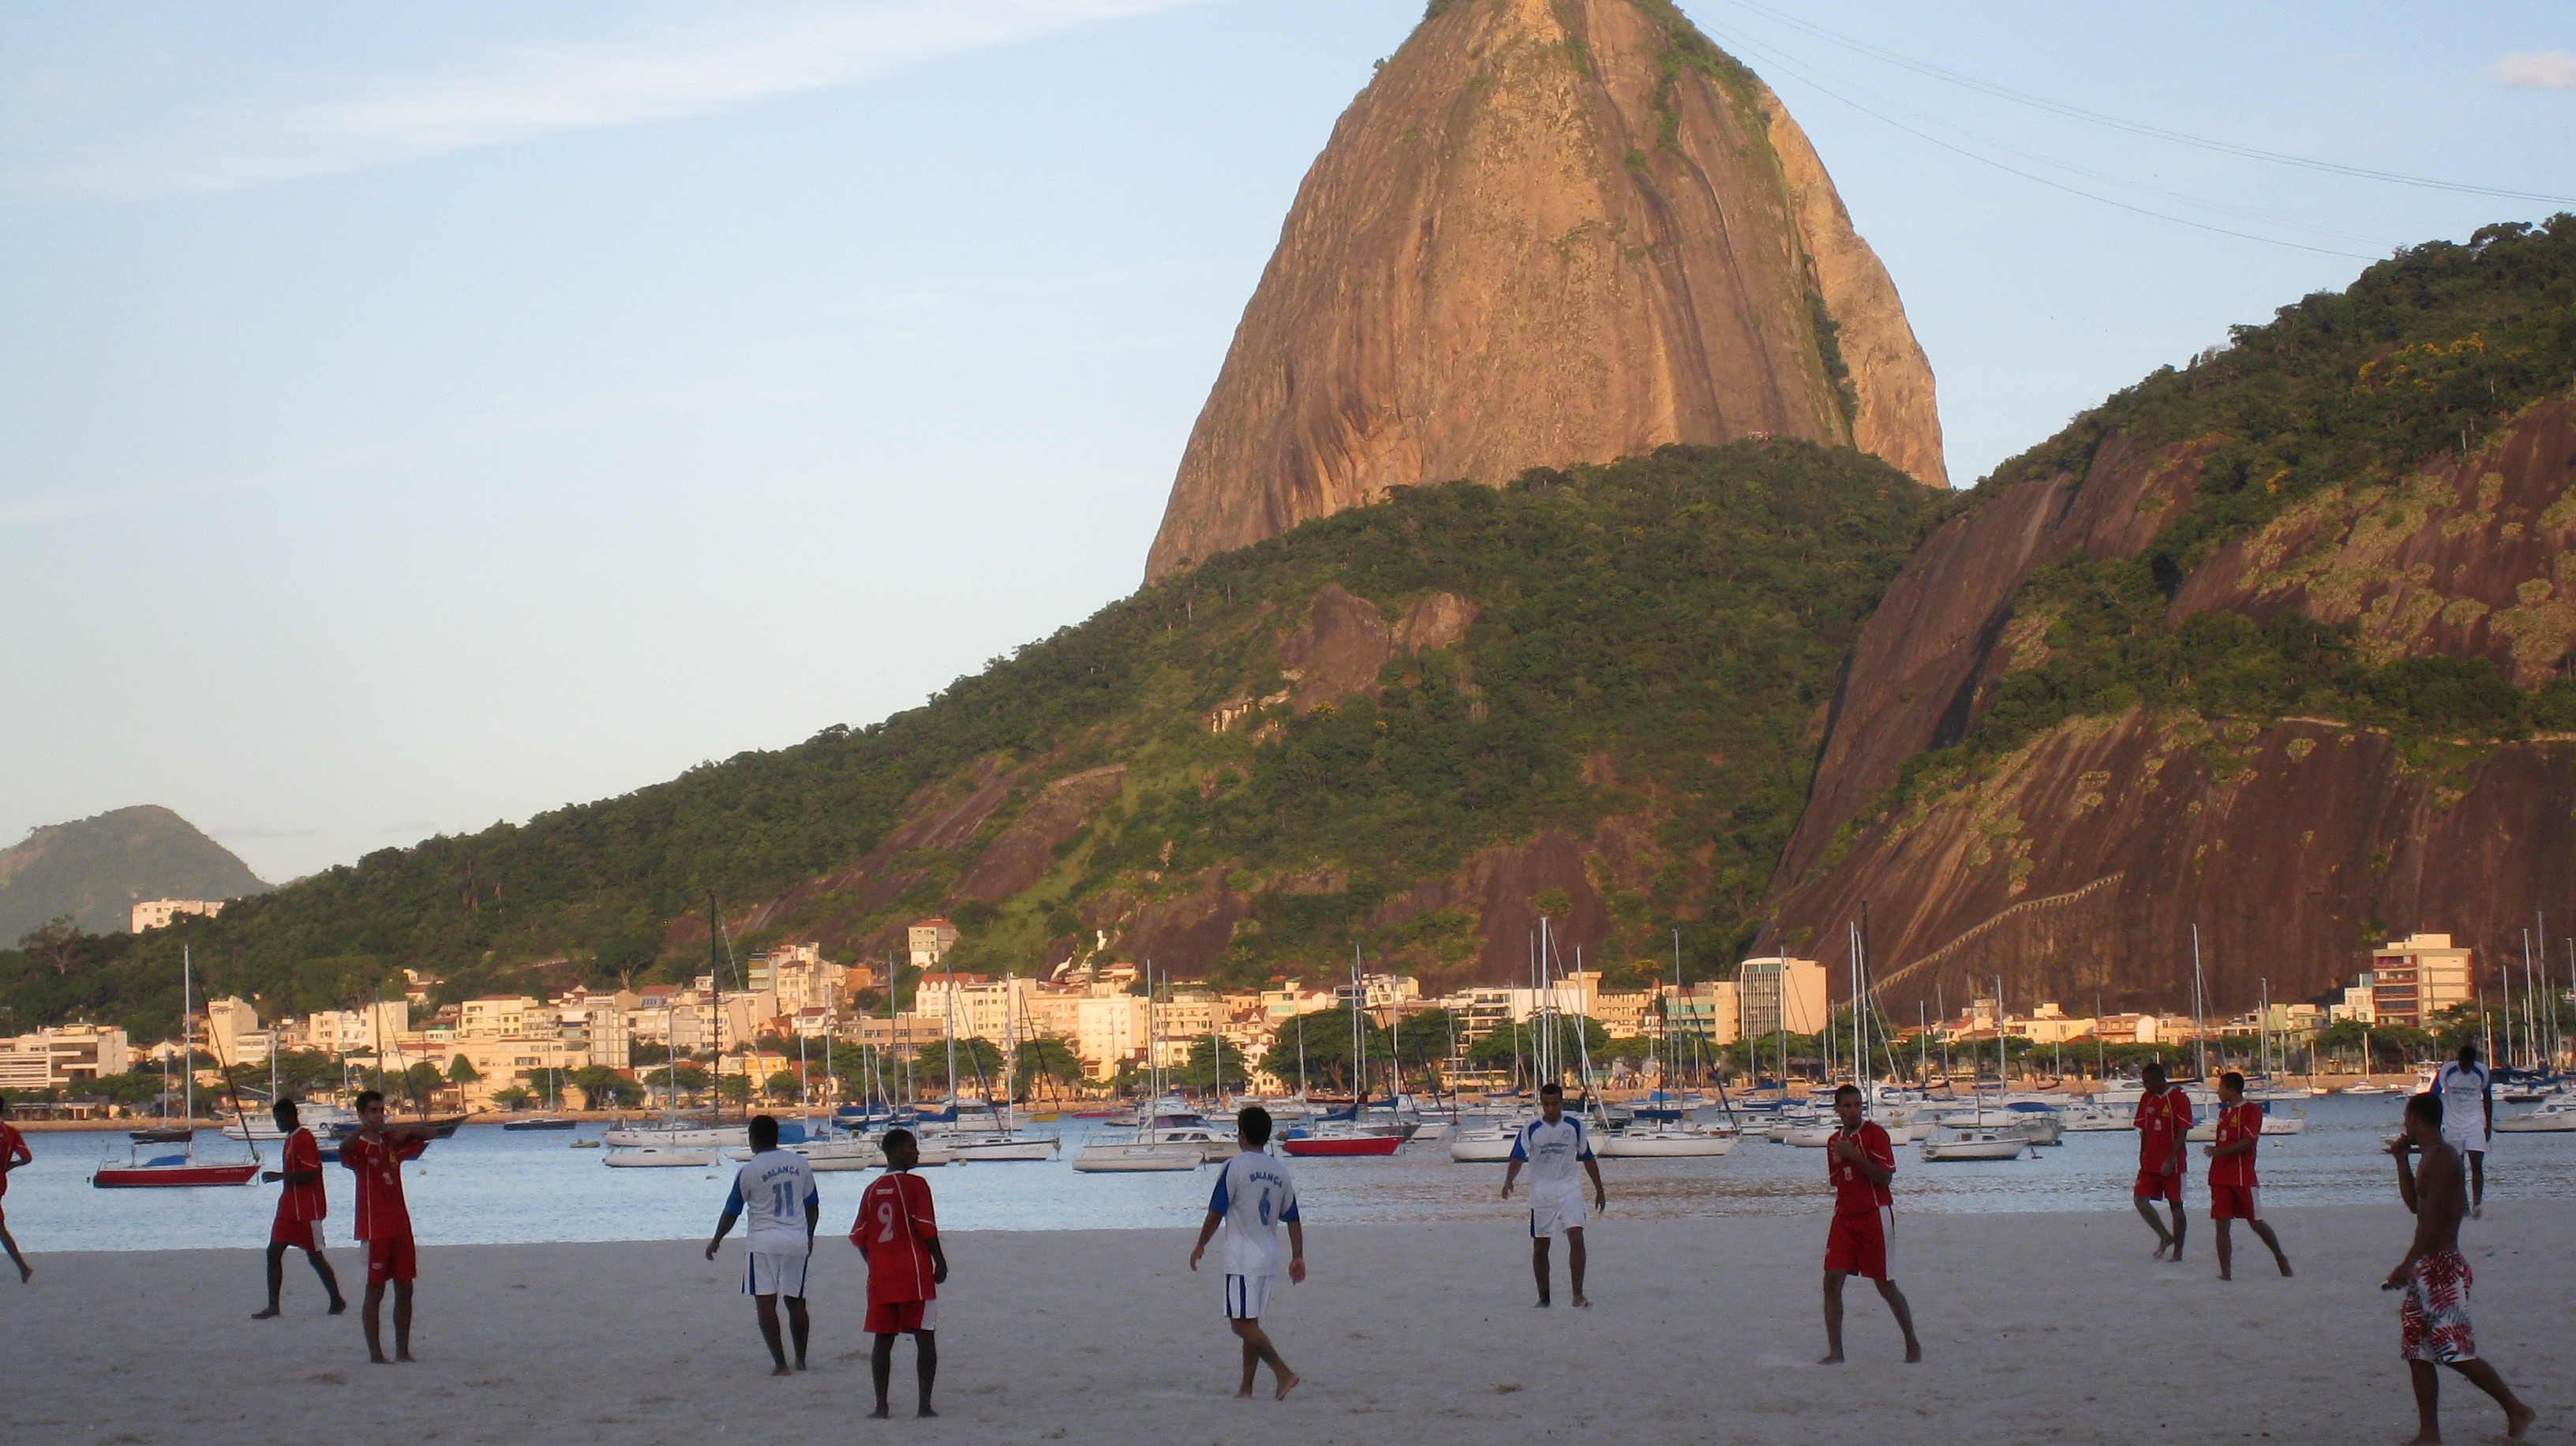 Beach_soccer_Rio - By Alicia Nijdam CC BY 2.0 Wikimedia Commons